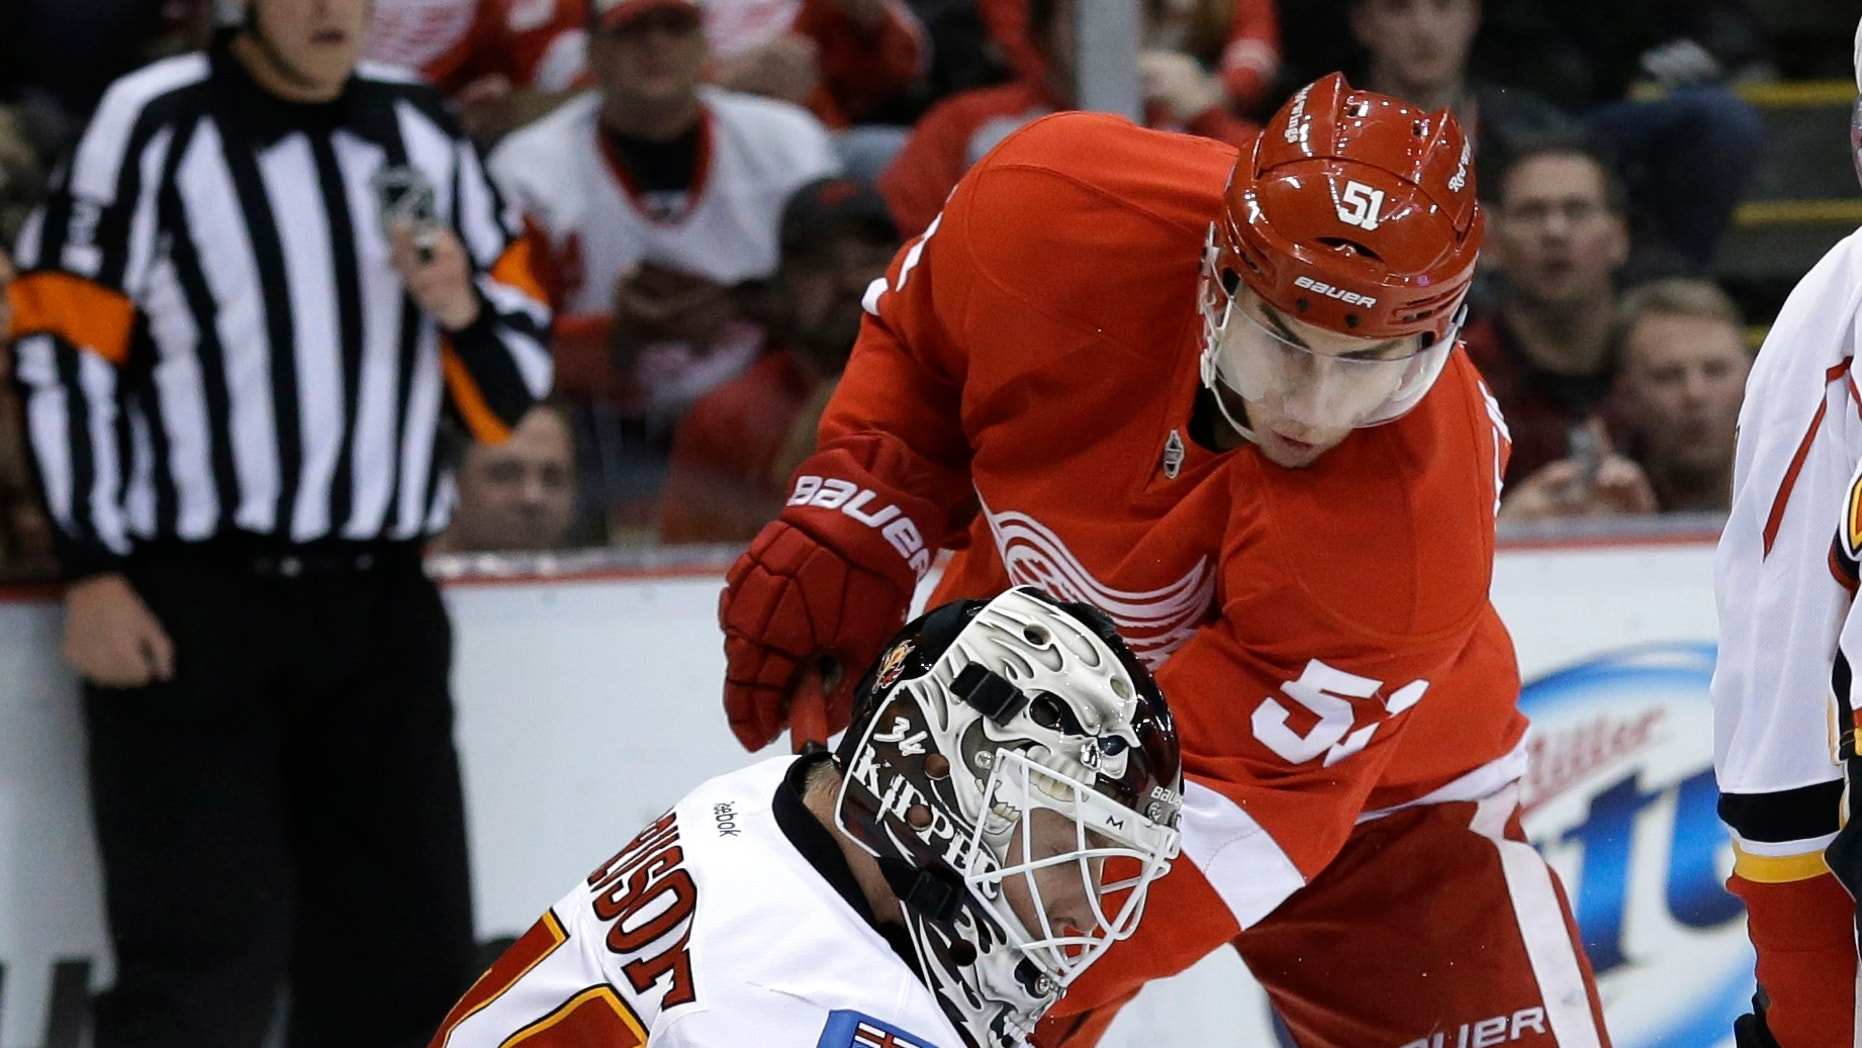 CORRECTS MONTH - Calgary Flames goalie Miikka Kiprusoff (34), of Finland, stops a shot by Detroit Red Wings center Valtteri Filppula (51), of Finland, during the first period of an NHL hockey game in Detroit, Tuesday, Feb. 5, 2013.  (AP Photo/Paul Sancya)